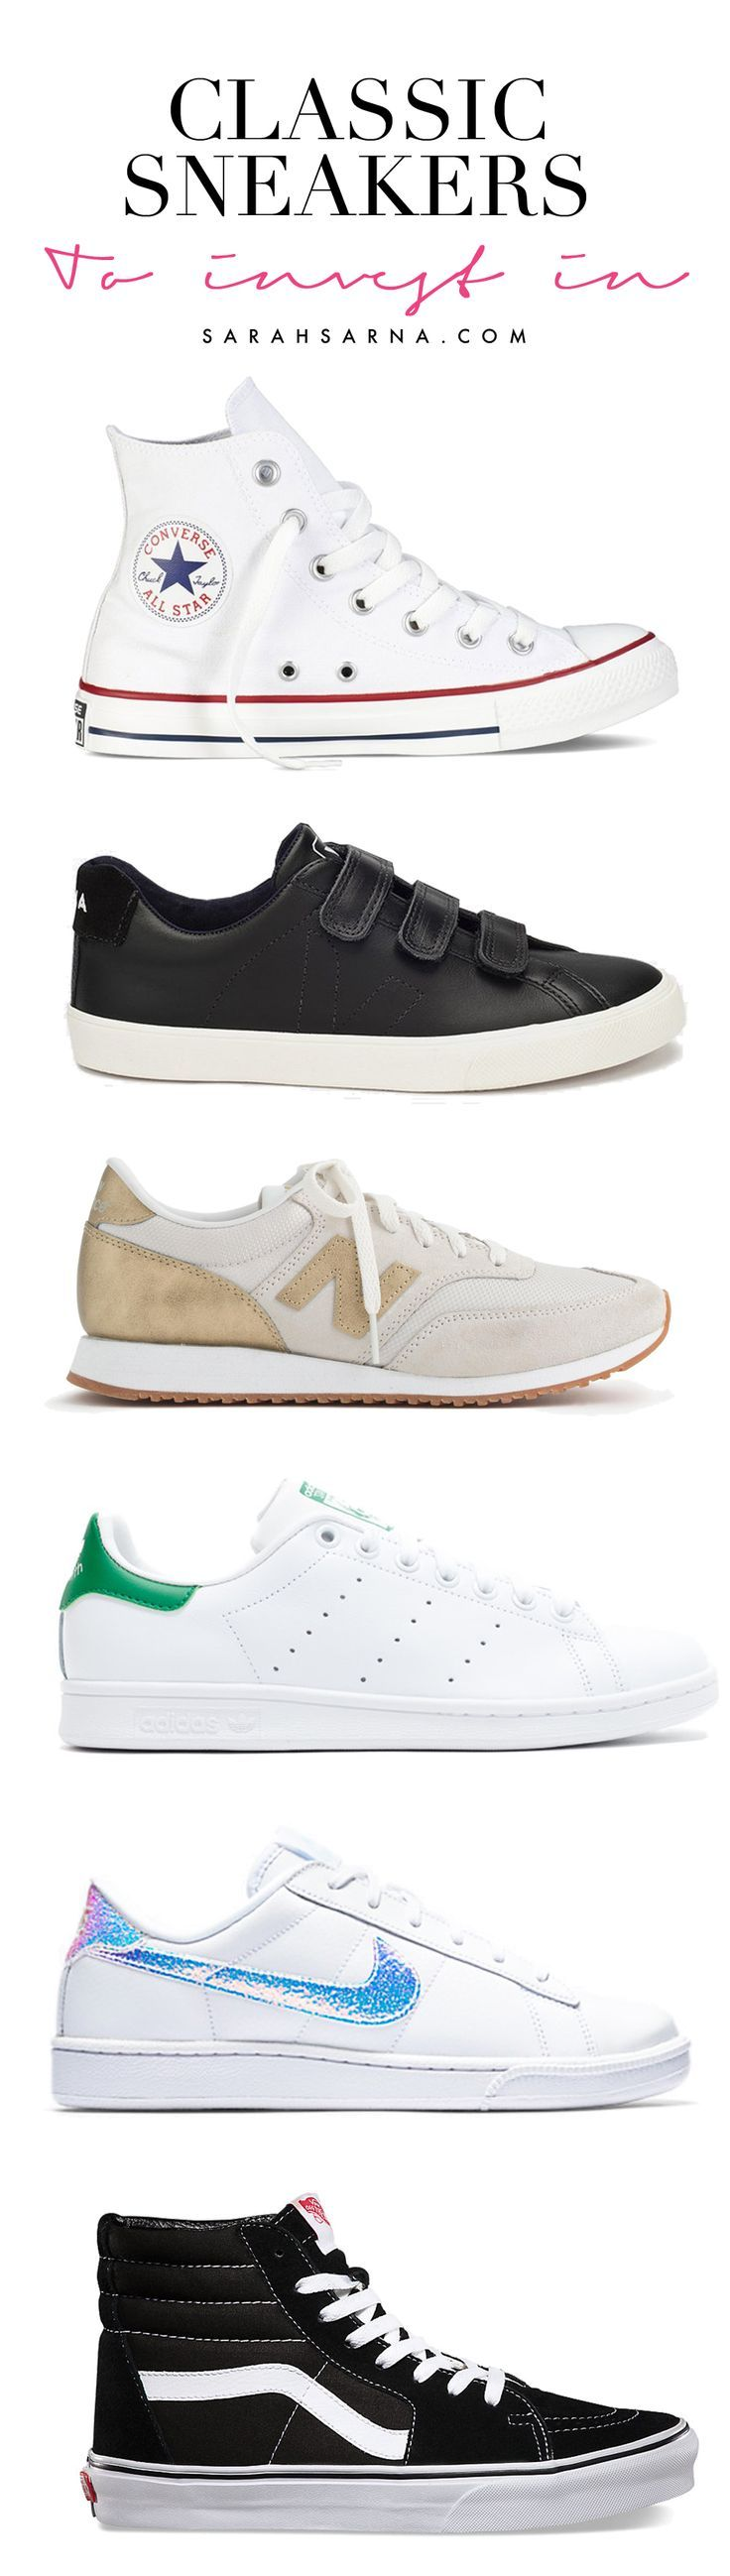 Style Ideas. White Converse All Star high top sneakers with red stripe, adidas Stan Smith sneakers, new balance sneakers, vans sneakers, and more classics that can be dressed up or down.